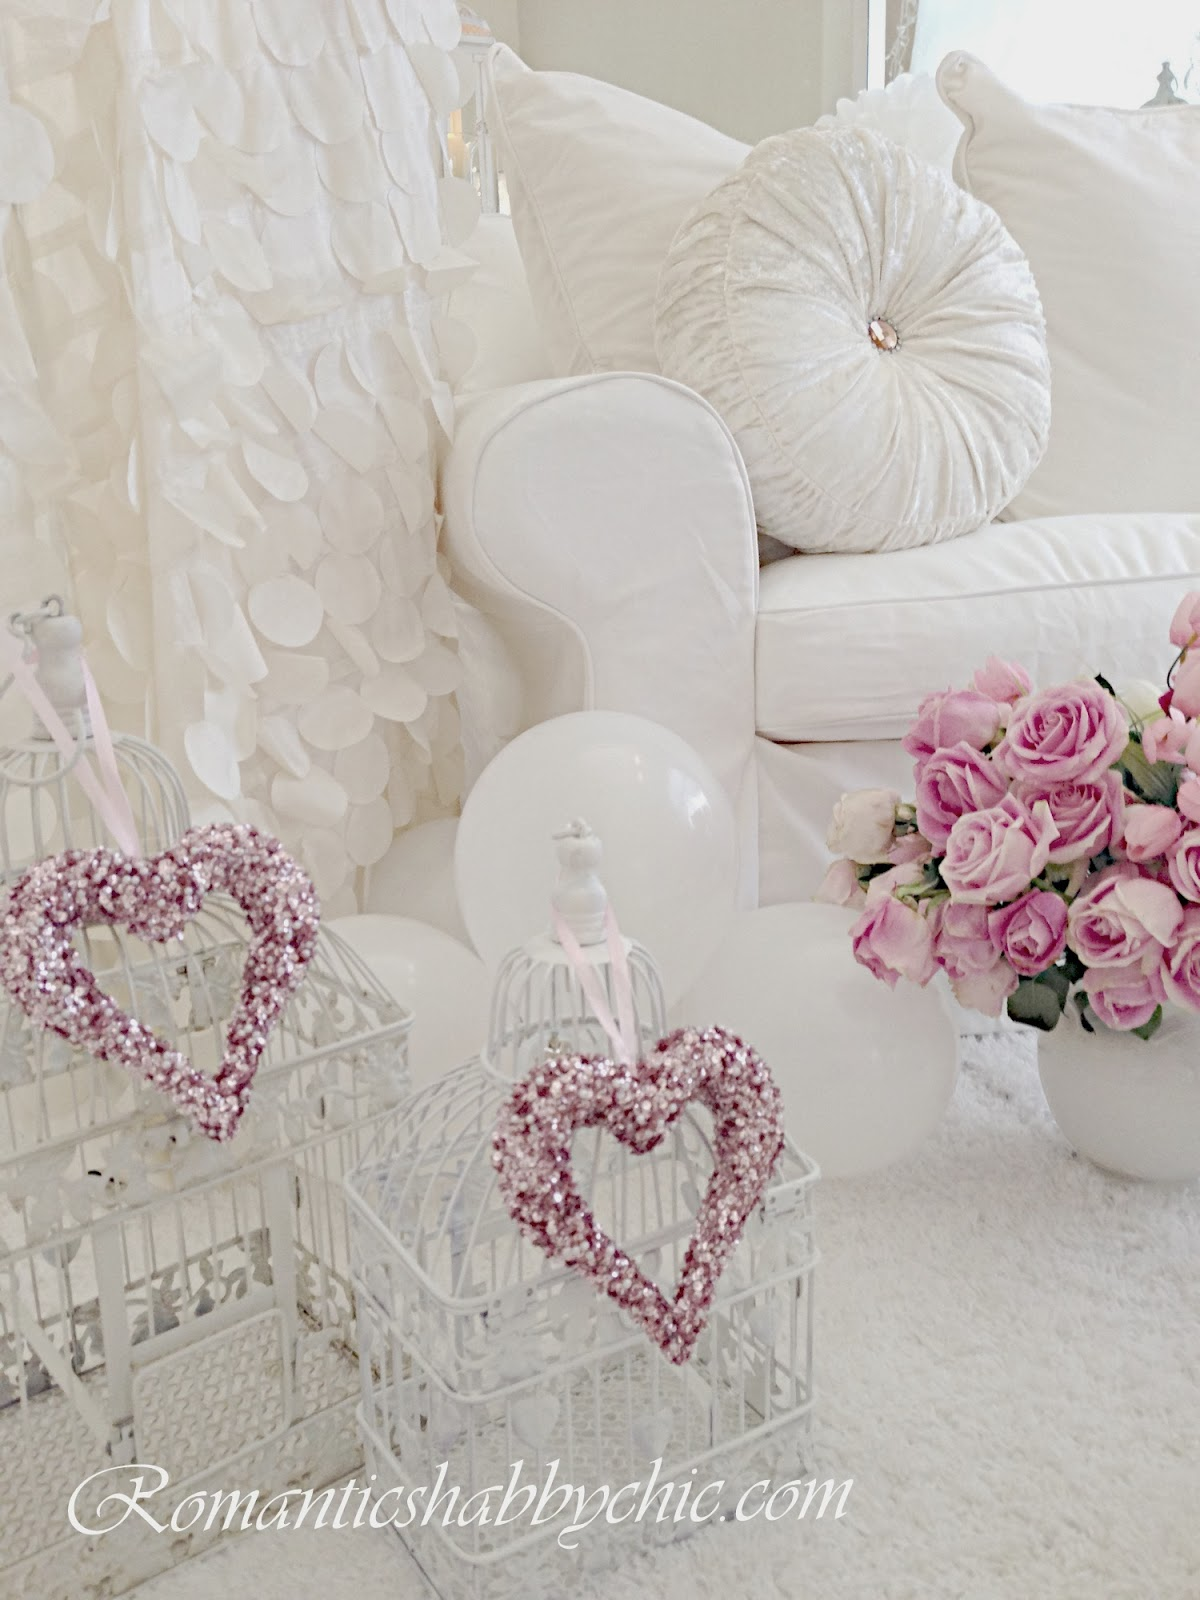 Have a nice day for Shabby chic blog italiani